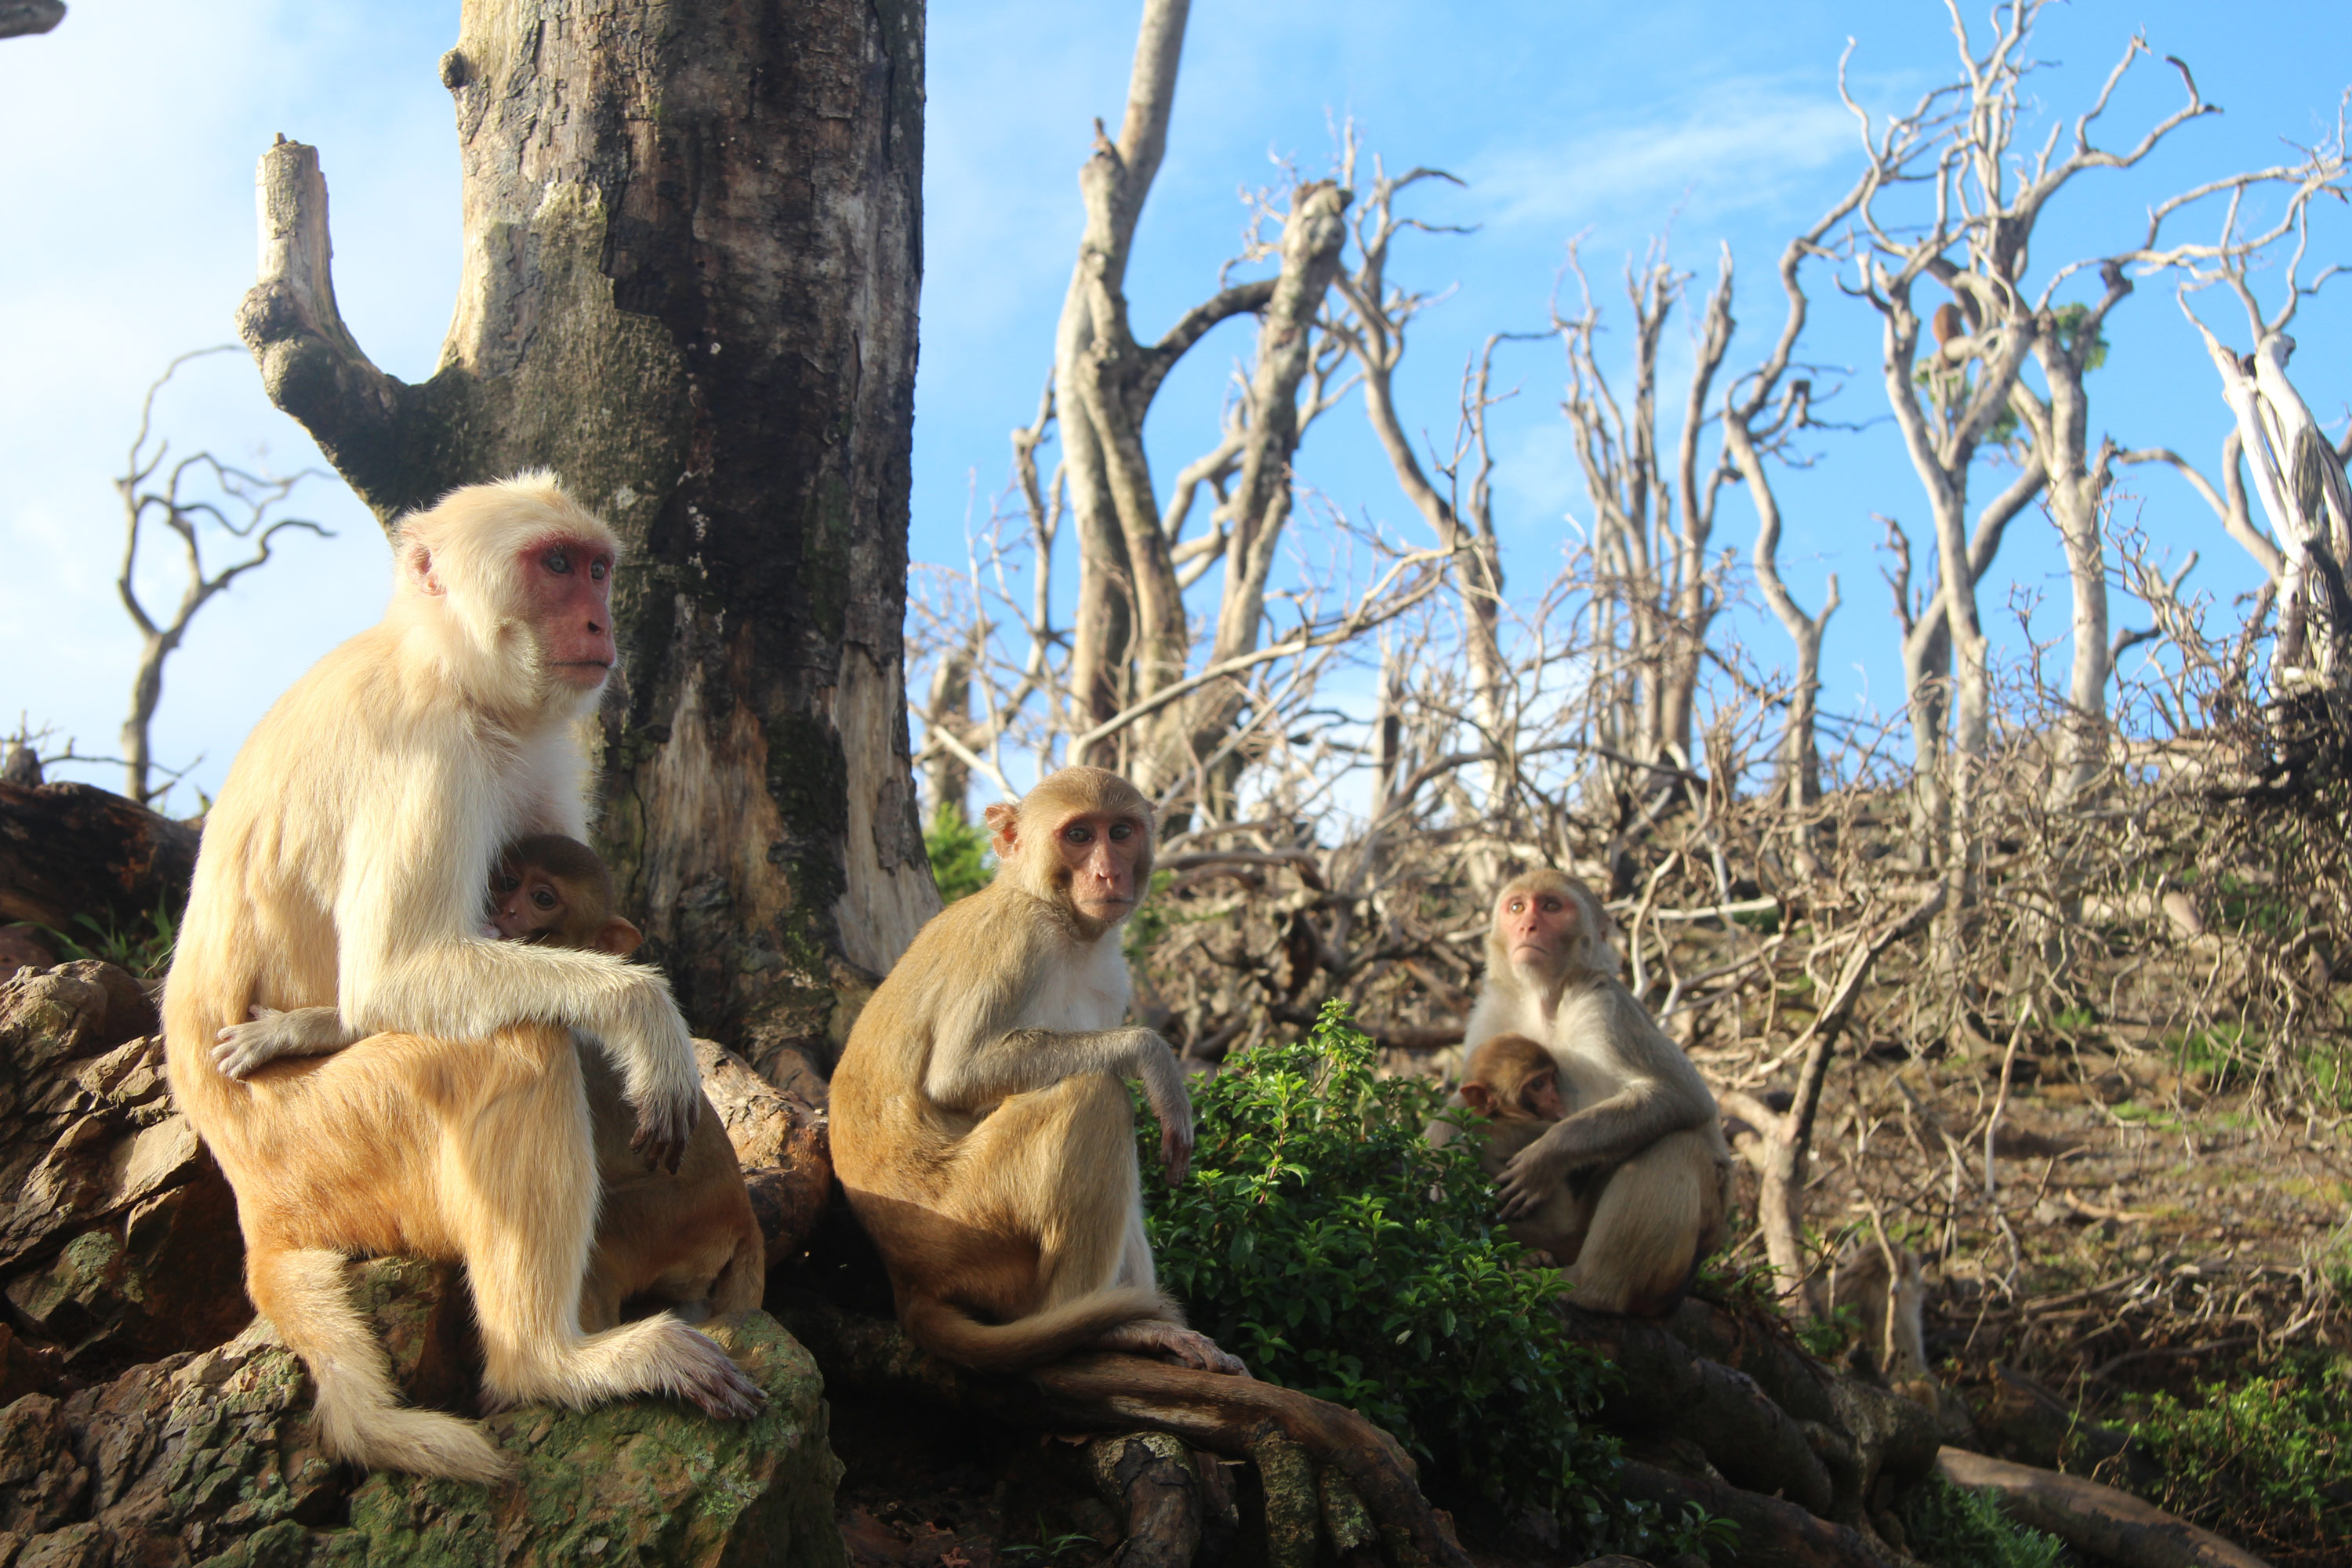 These monkeys formed an unlikely friendship after Hurricane Maria wrecked their home